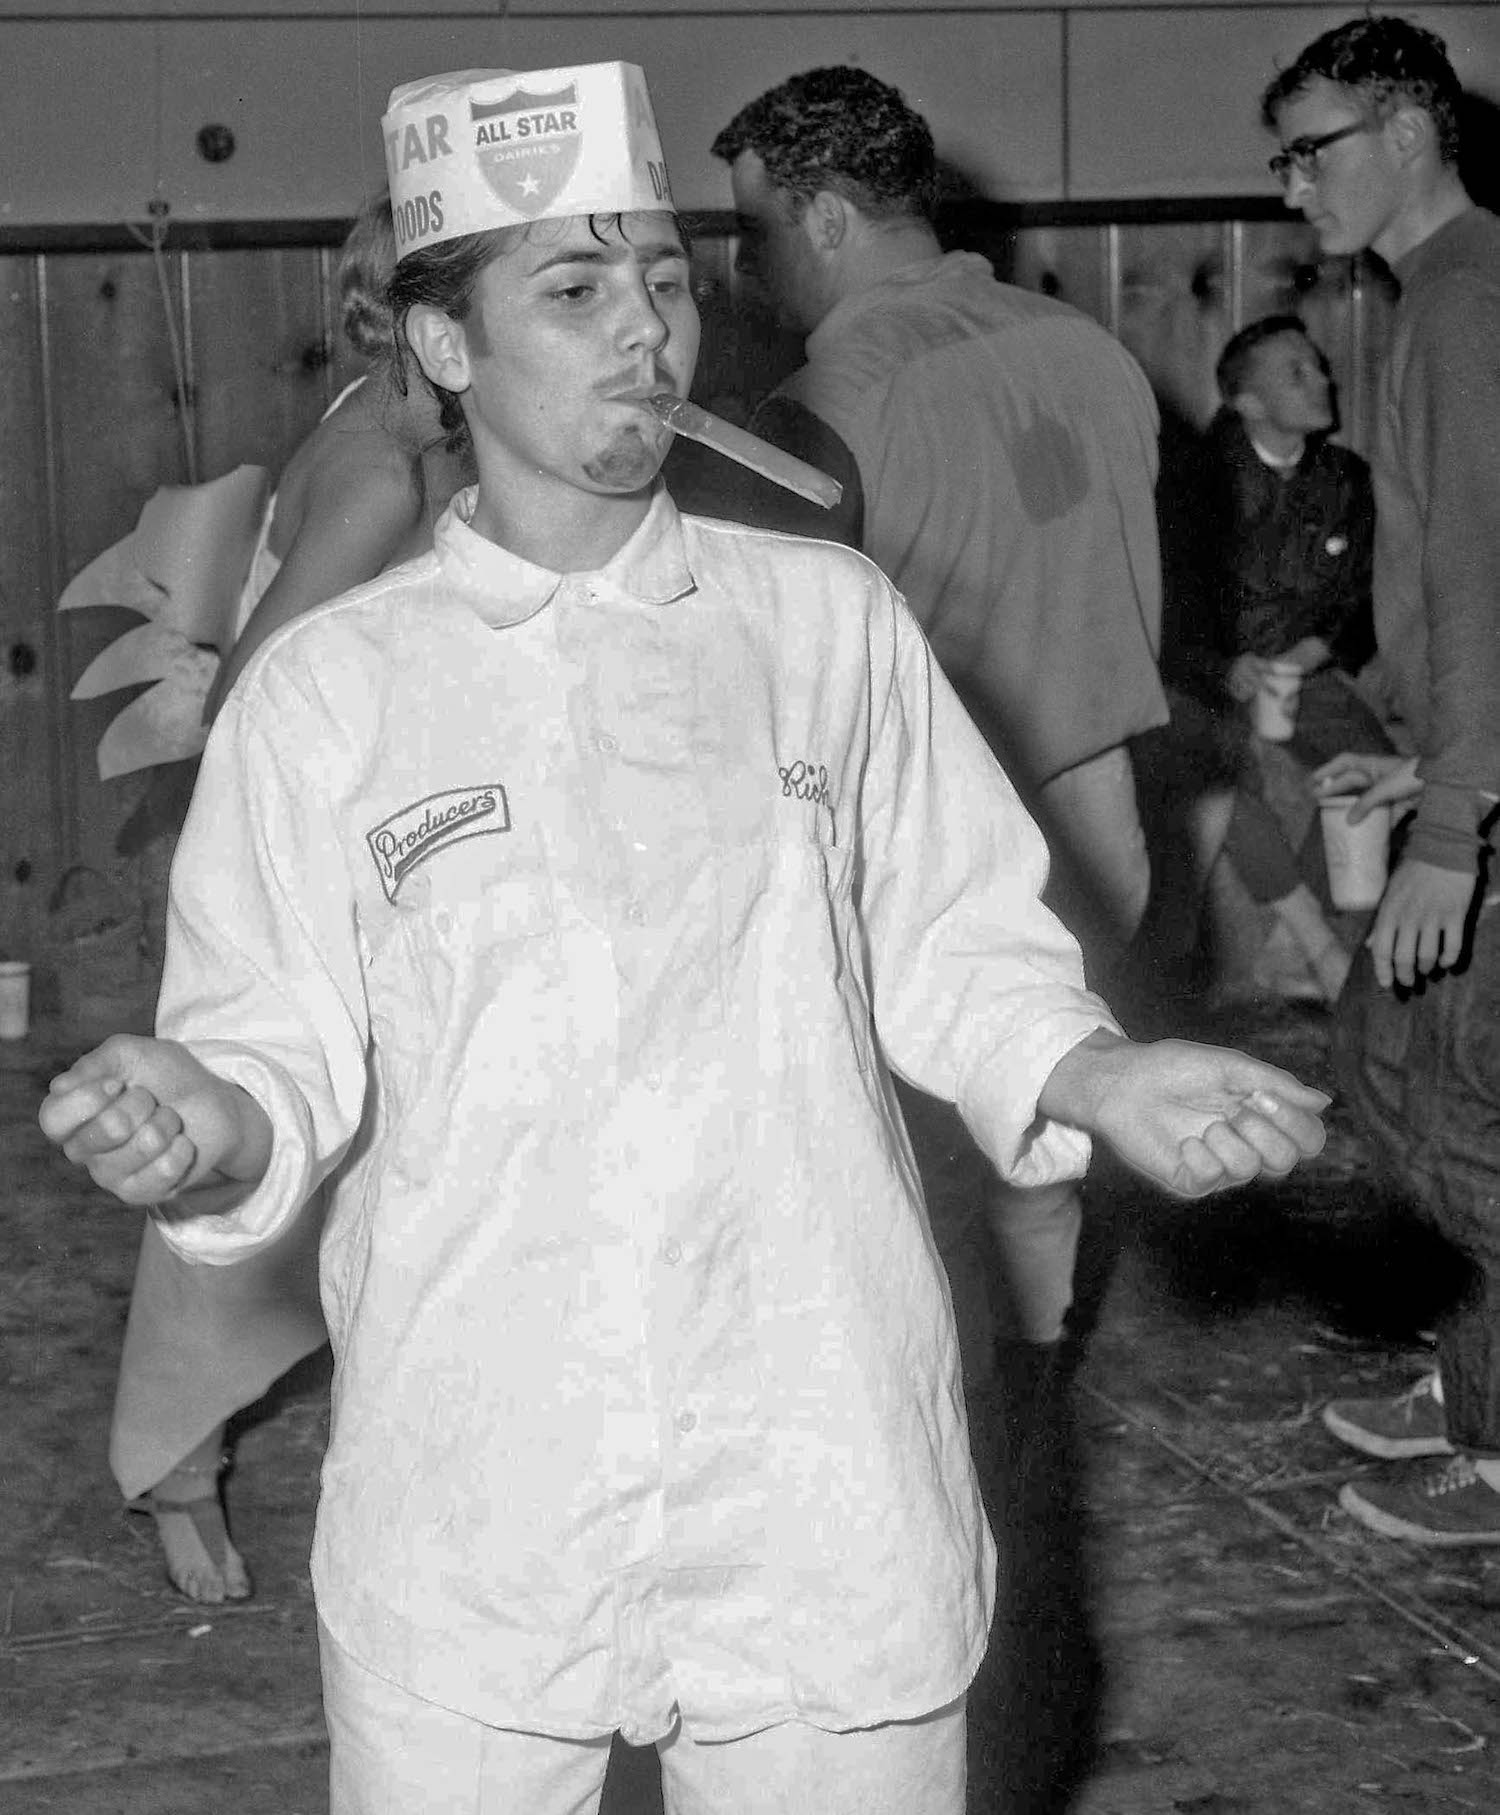 Fresno State College, Dec 13, 1963, costume party, Lovely Rita